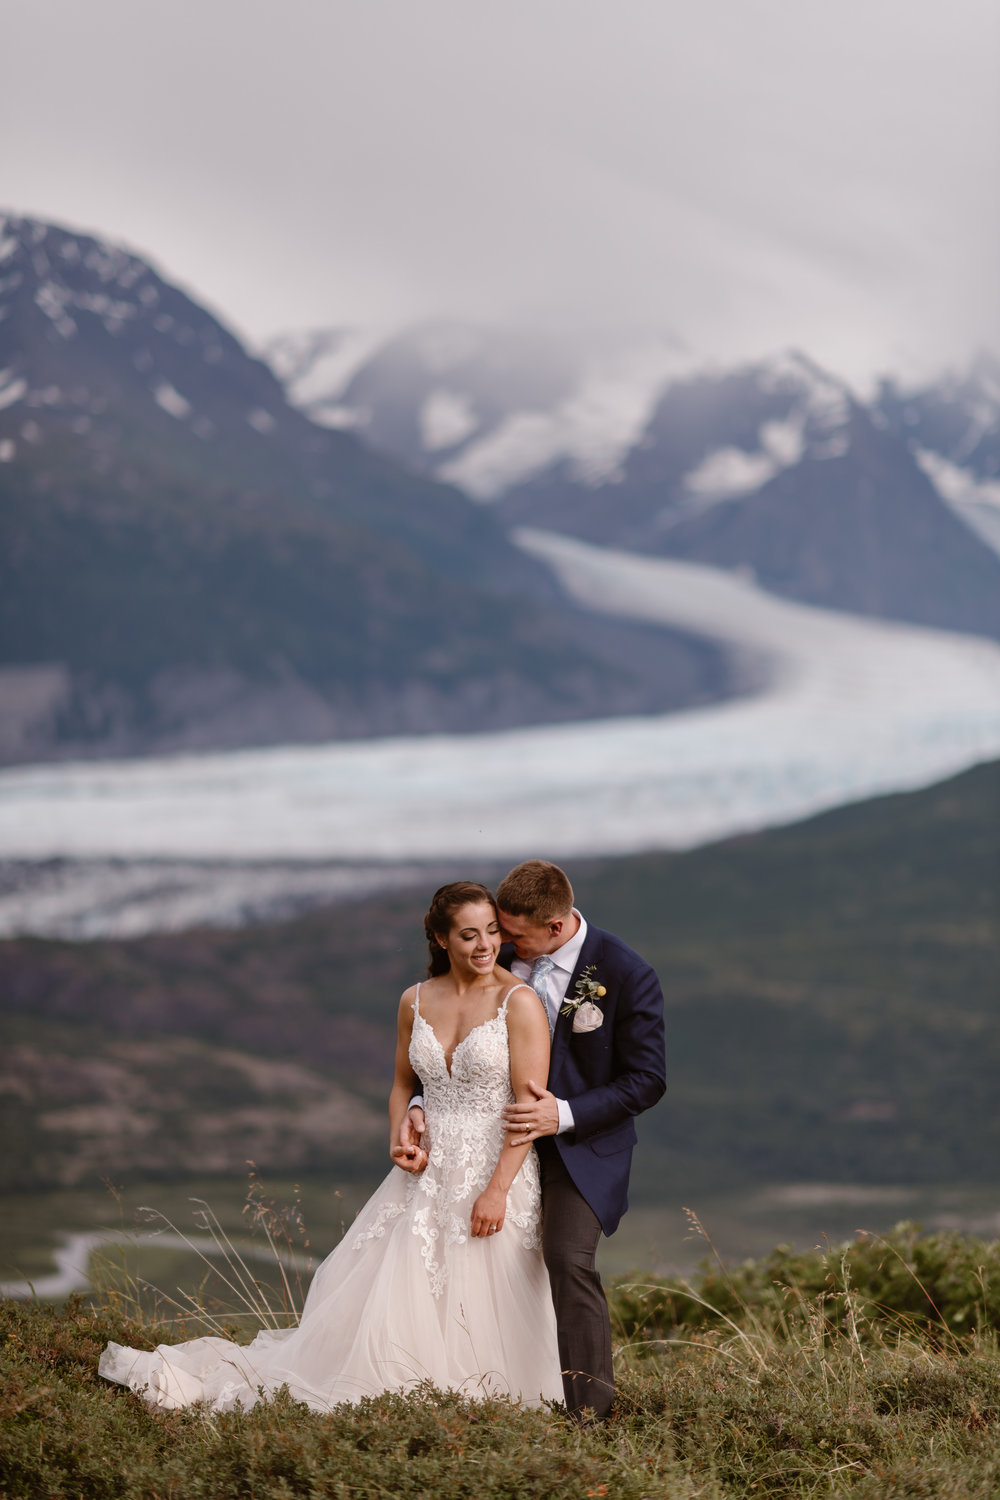 Jordyn and Connor snuggle and embrace in their wedding attire as they stand on the green, lush side of a mountain. In the background of this elopement photo is a glacial lake and glaciated peaks — two gorgeous features the couple wanted to see during their Alaska helicopter elopement story.